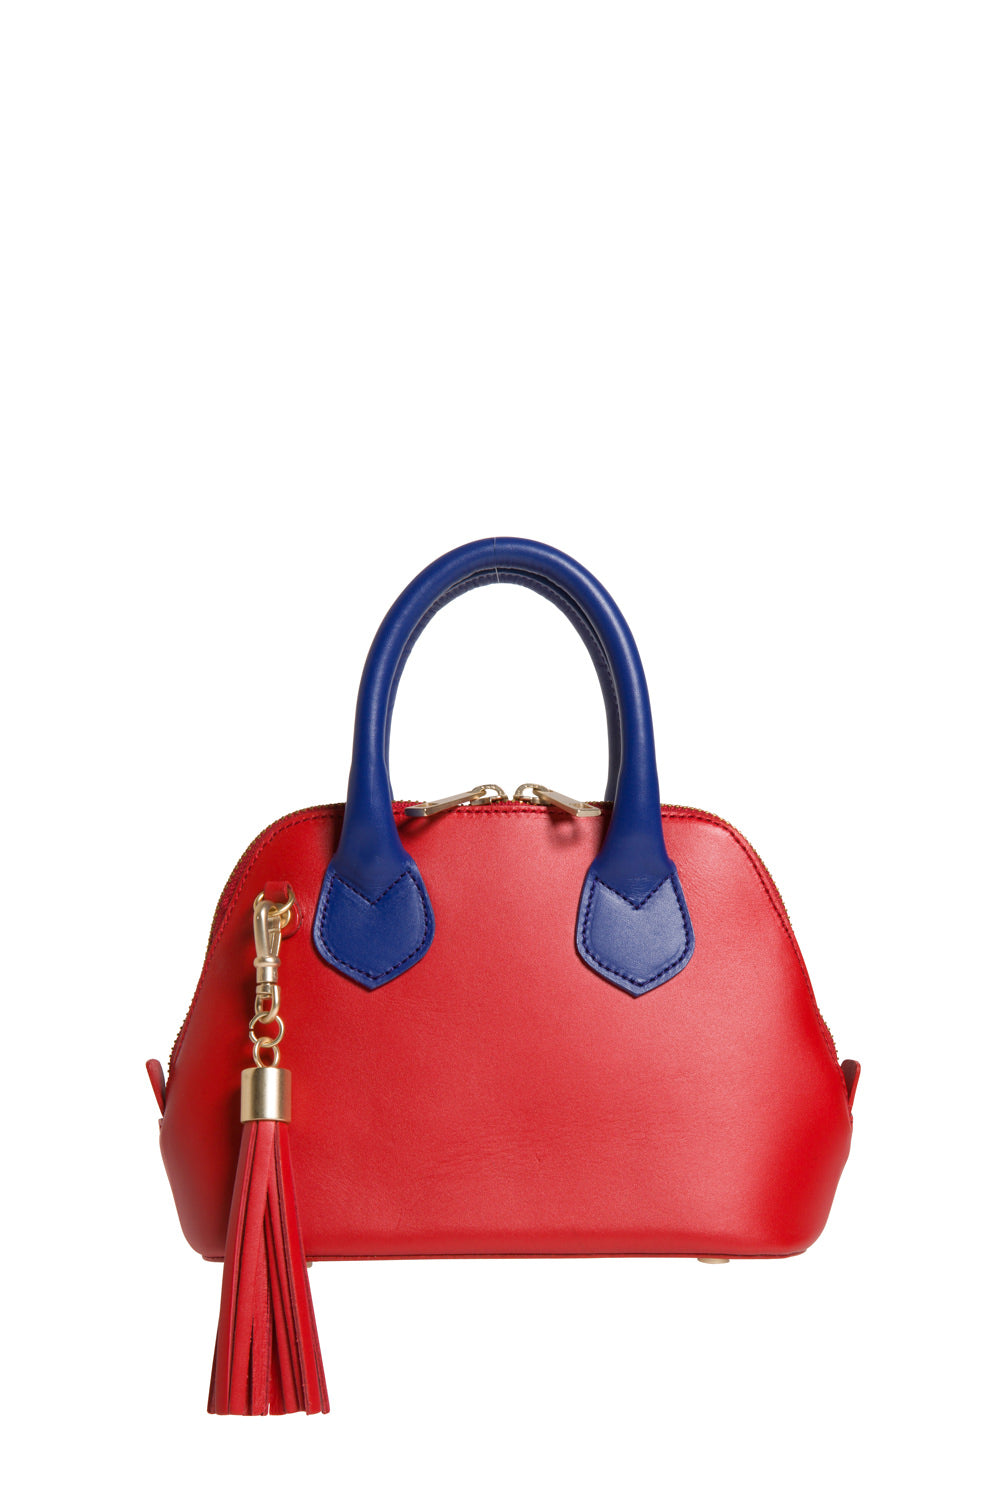 Red & Cobalt Blue Smooth Leather 'Watson Micro' Tote | Mel Boteri | Front View